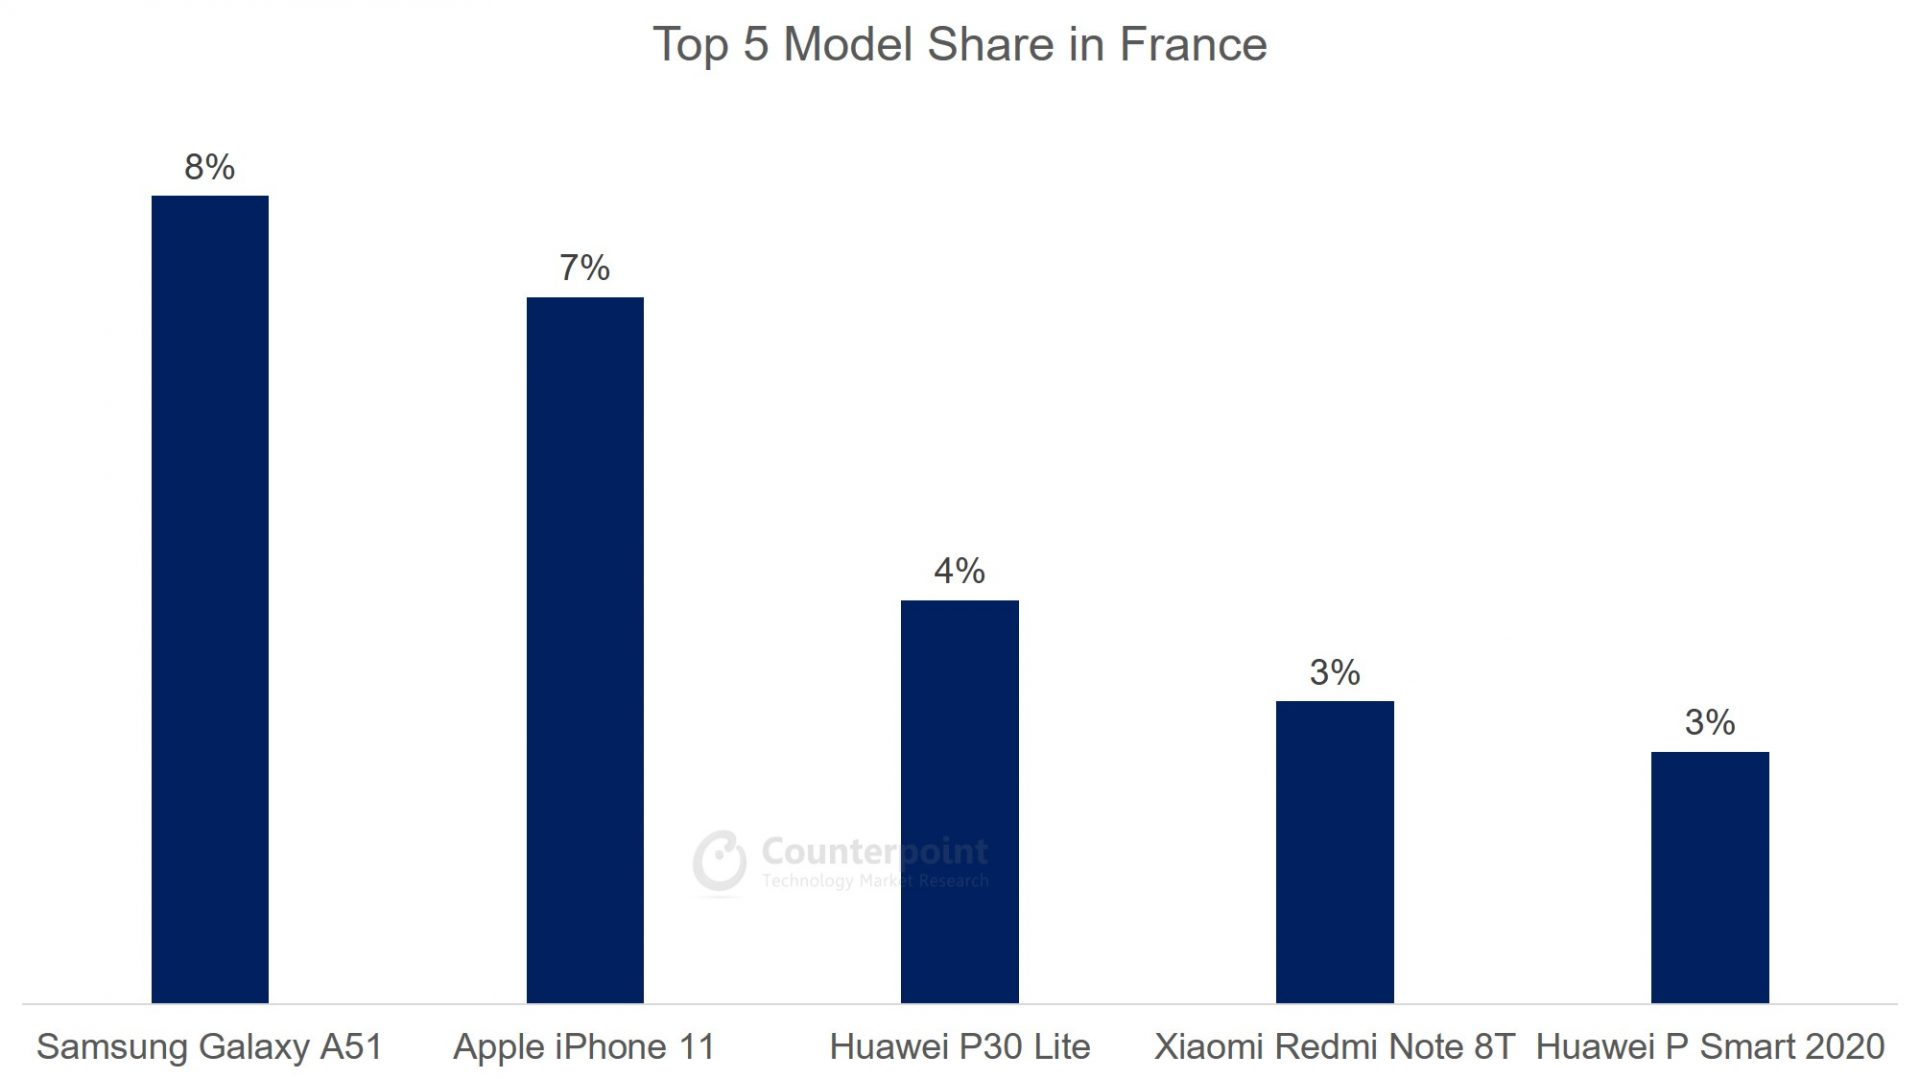 Counterpoint: (Apr 2020) Top 5 Smartphone Model Share in France